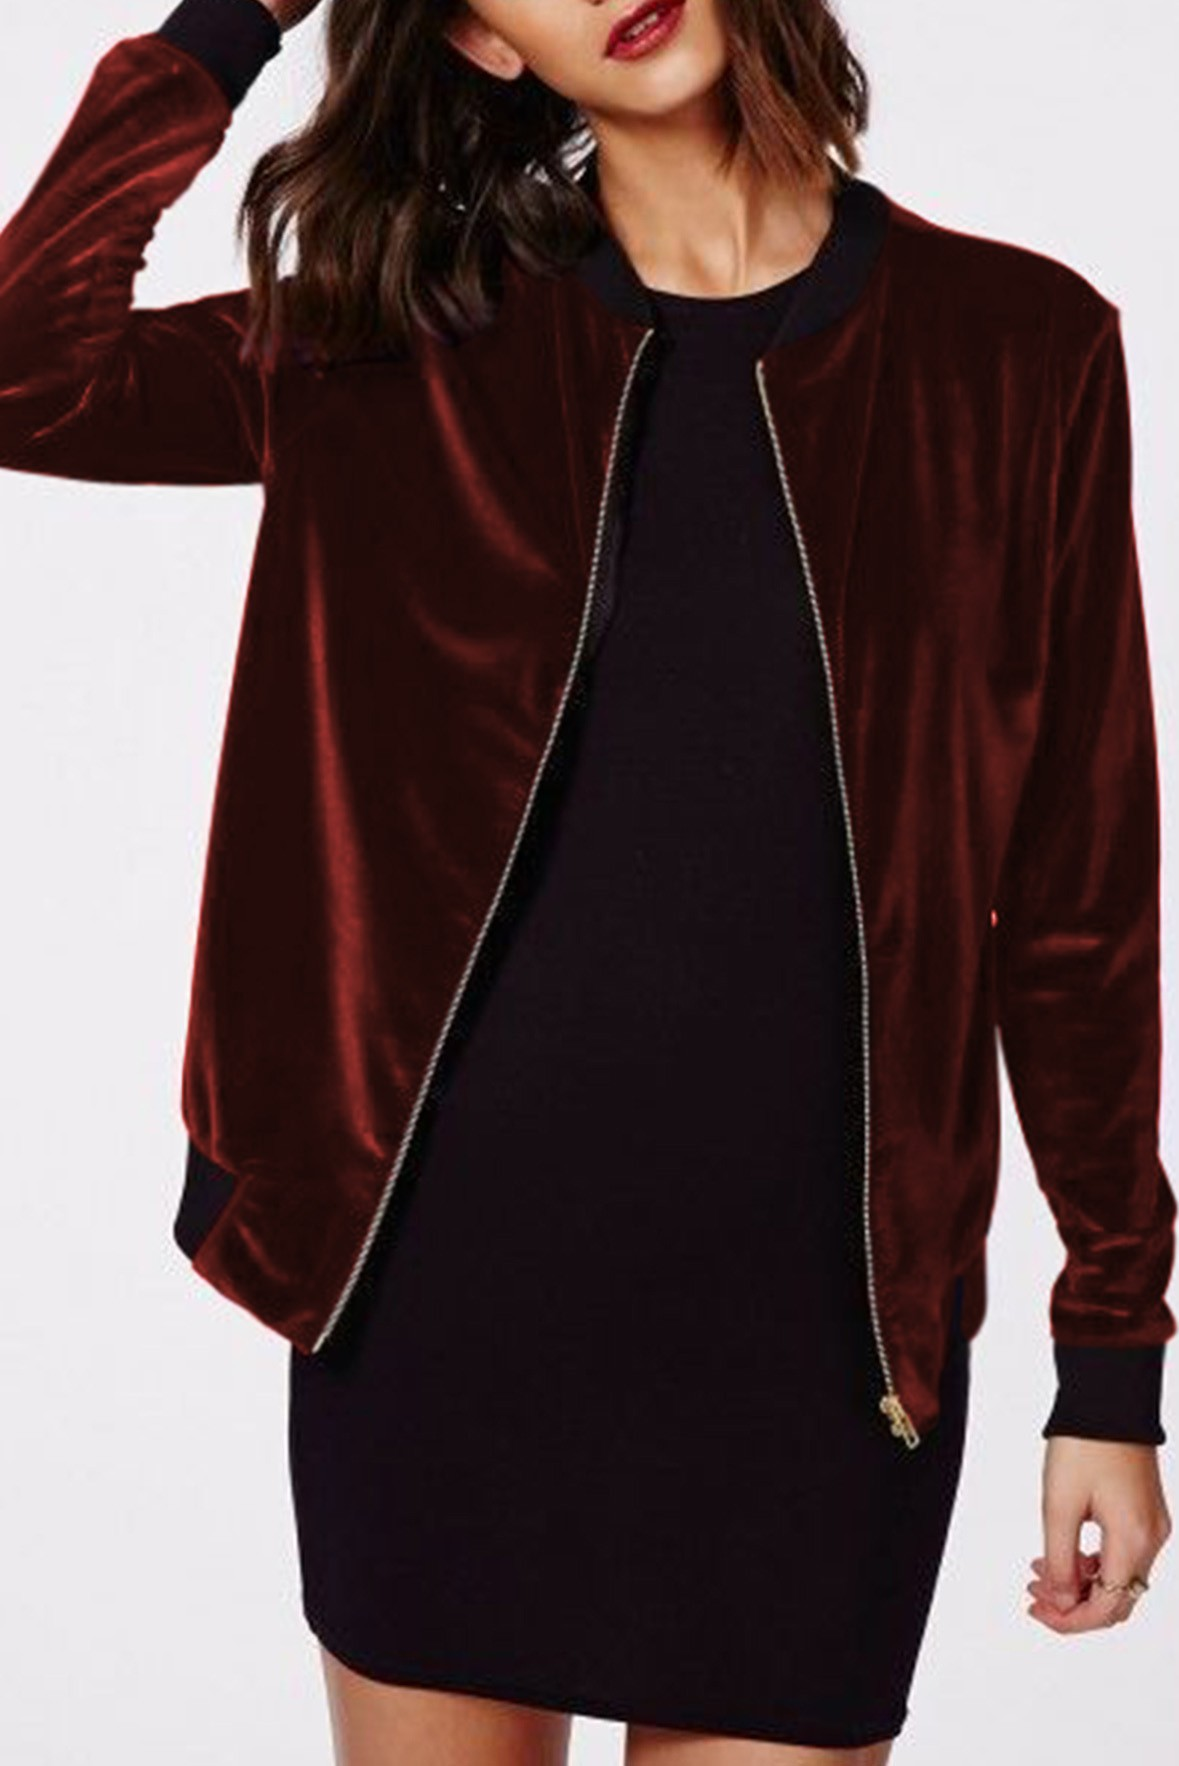 Life of the Party Jacket Marsala